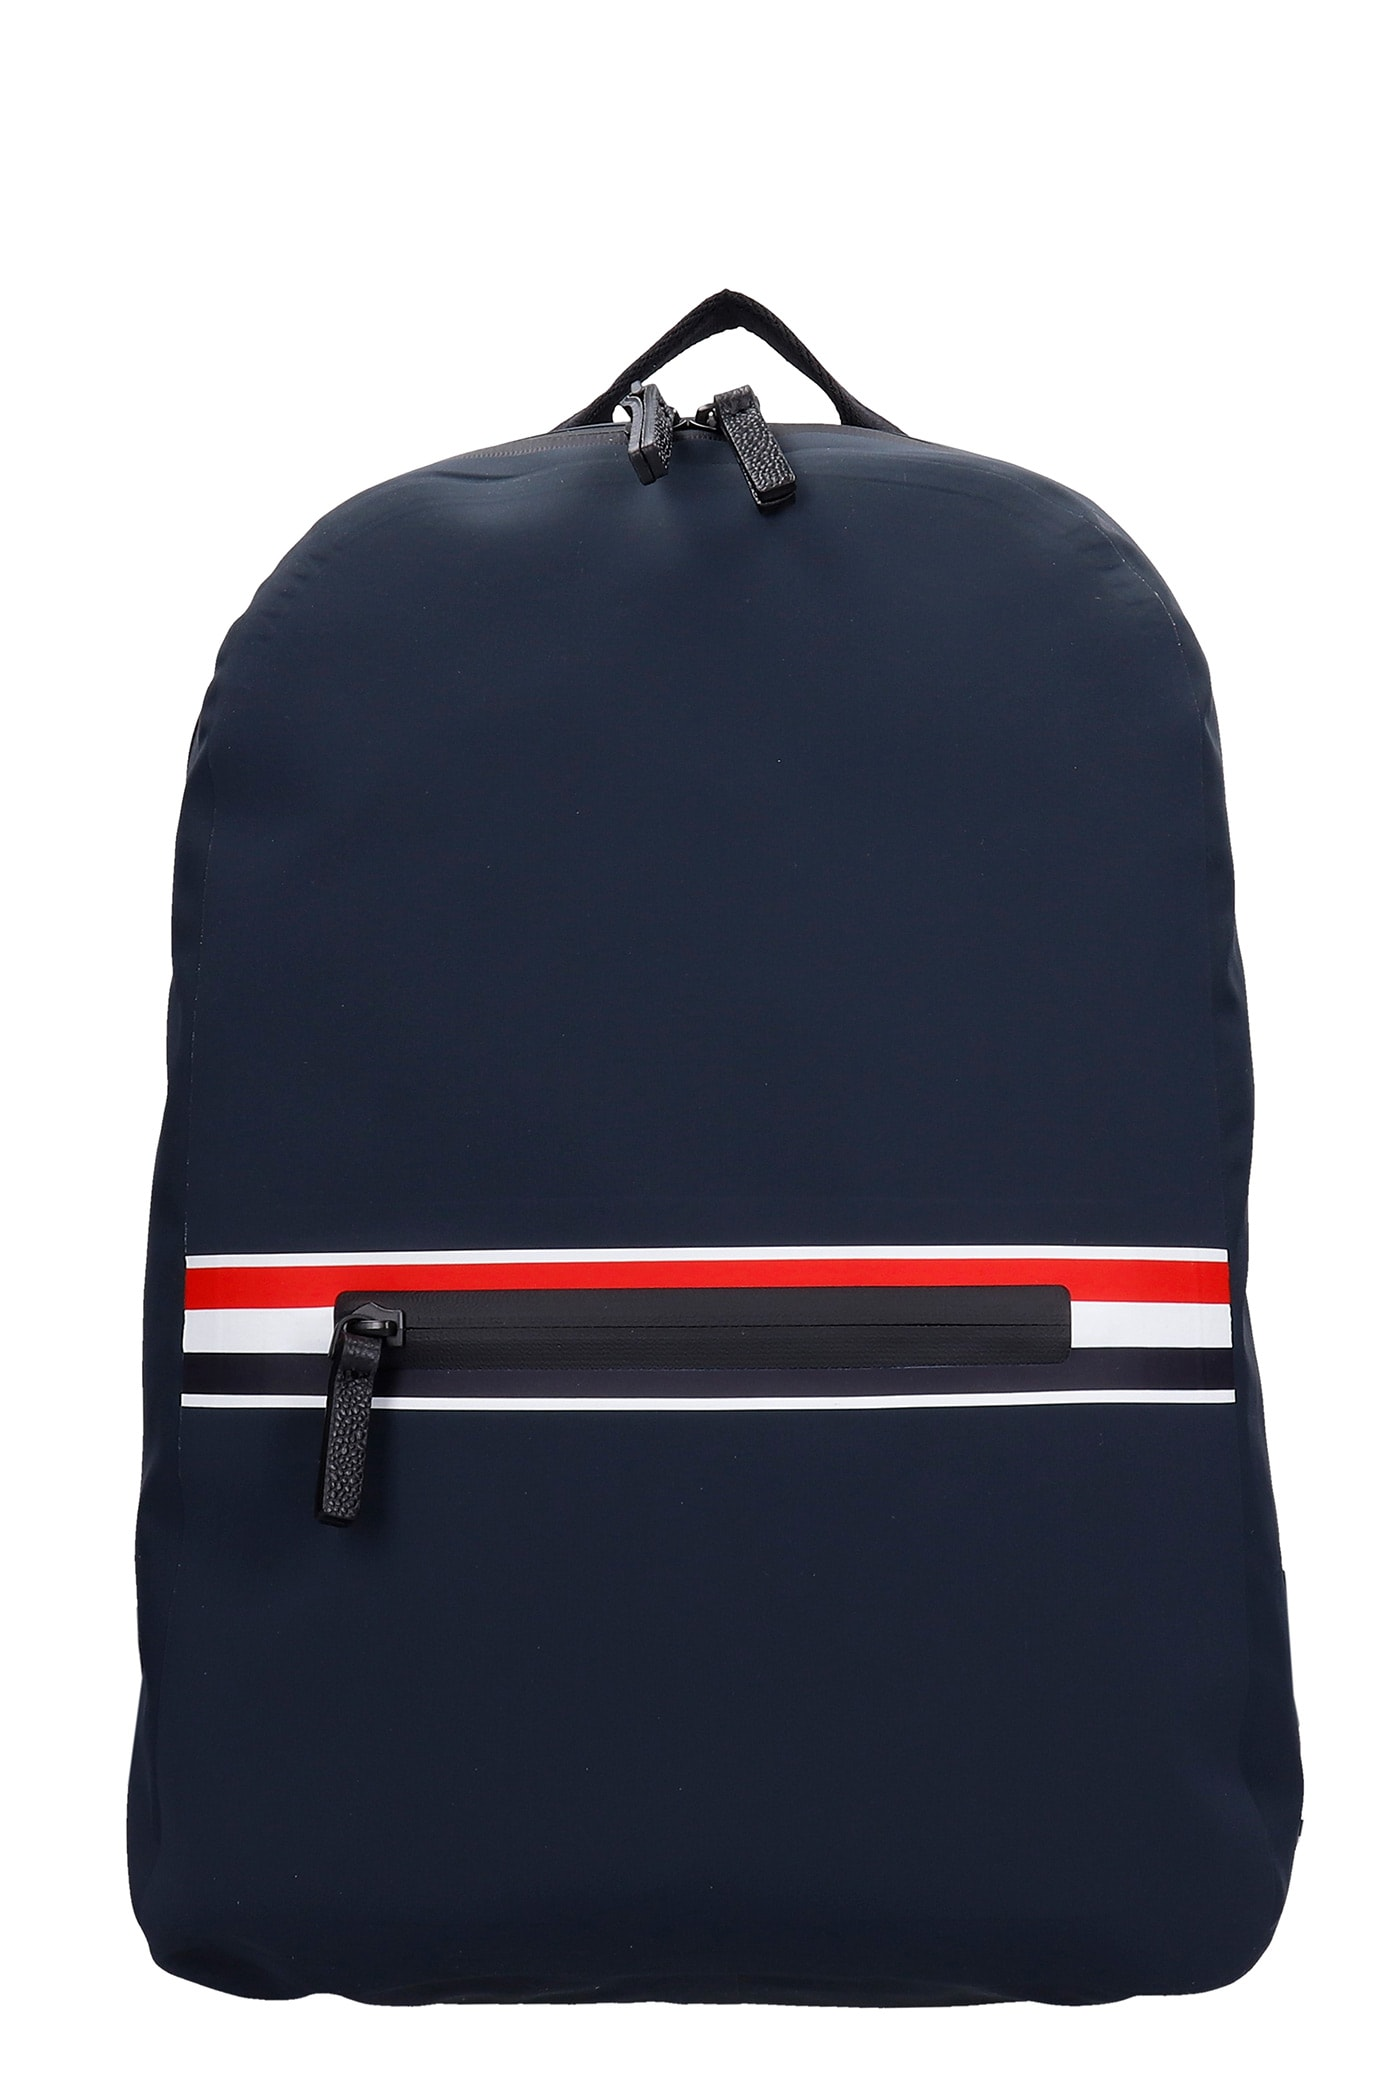 Thom Browne Backpack In Grey Polyester